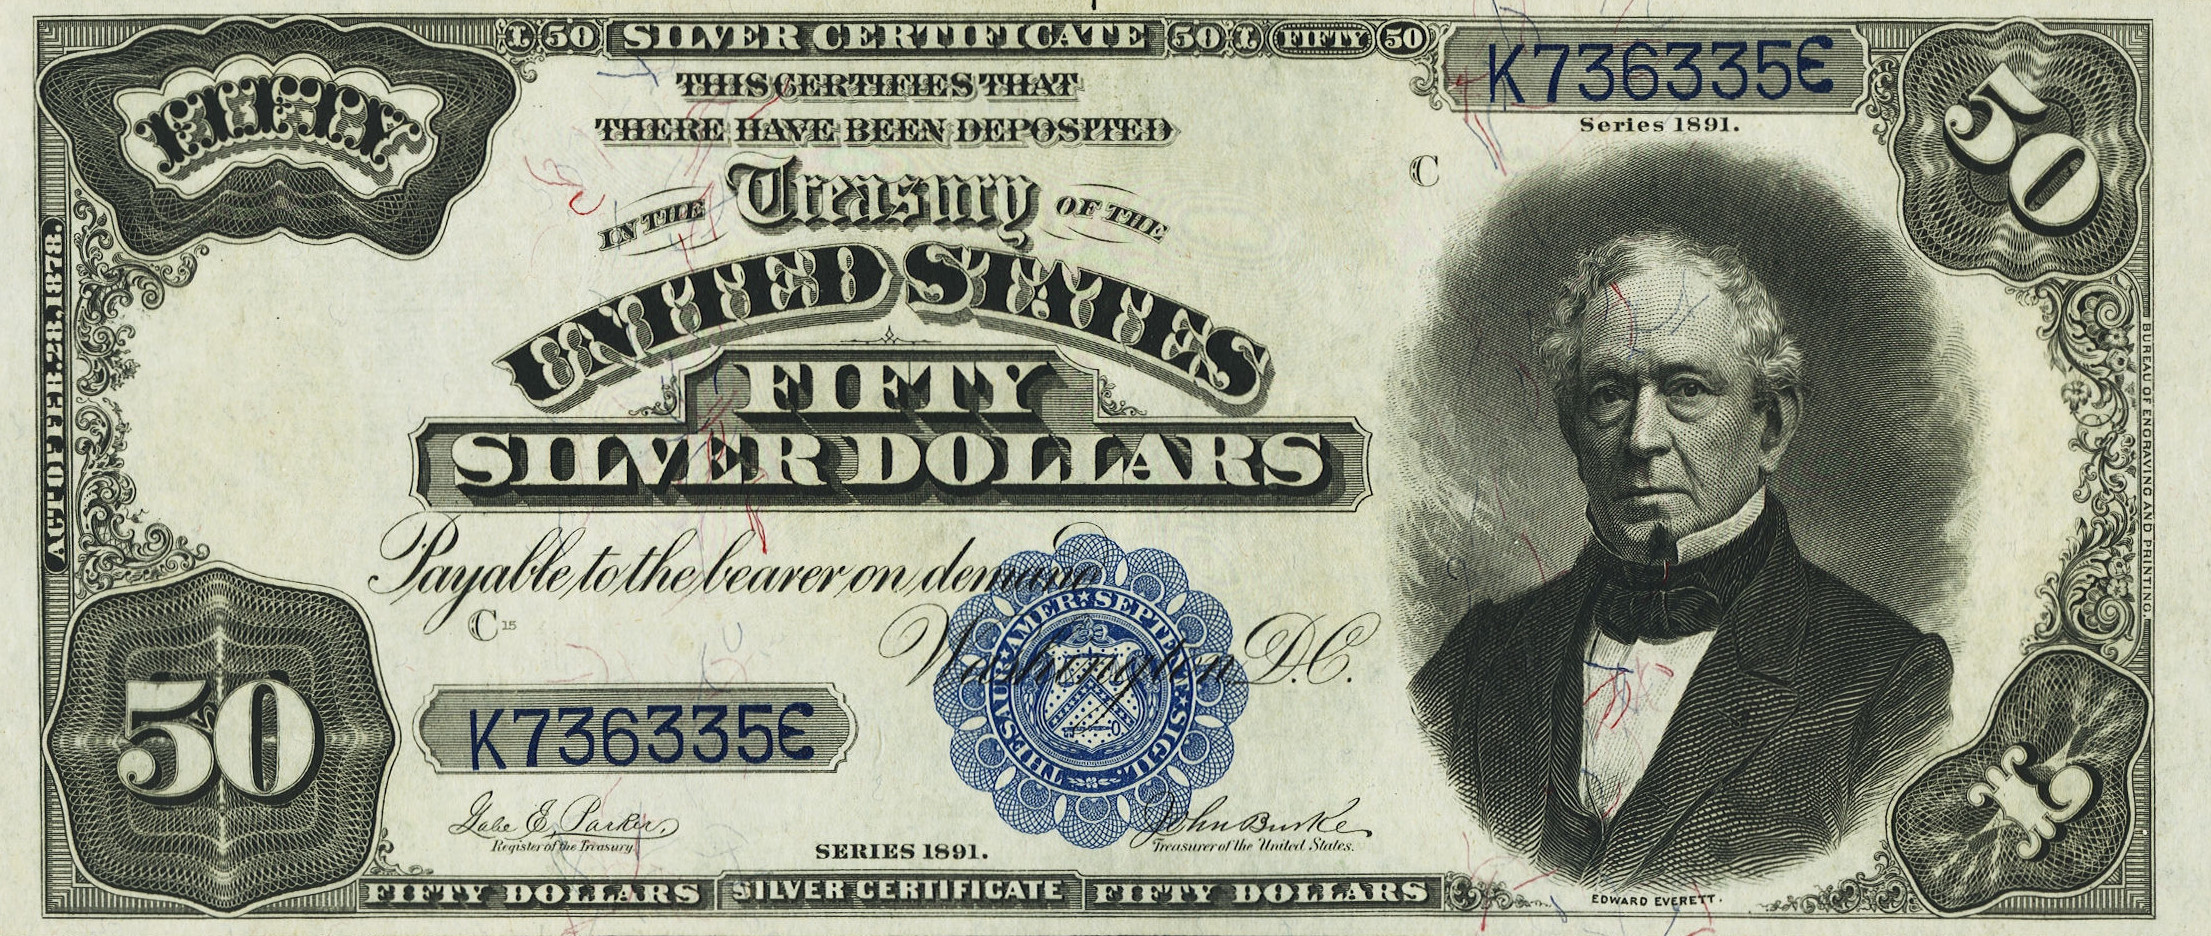 Large type bank notes for sale donckelly 50 silver certificates f323 f335 xflitez Gallery